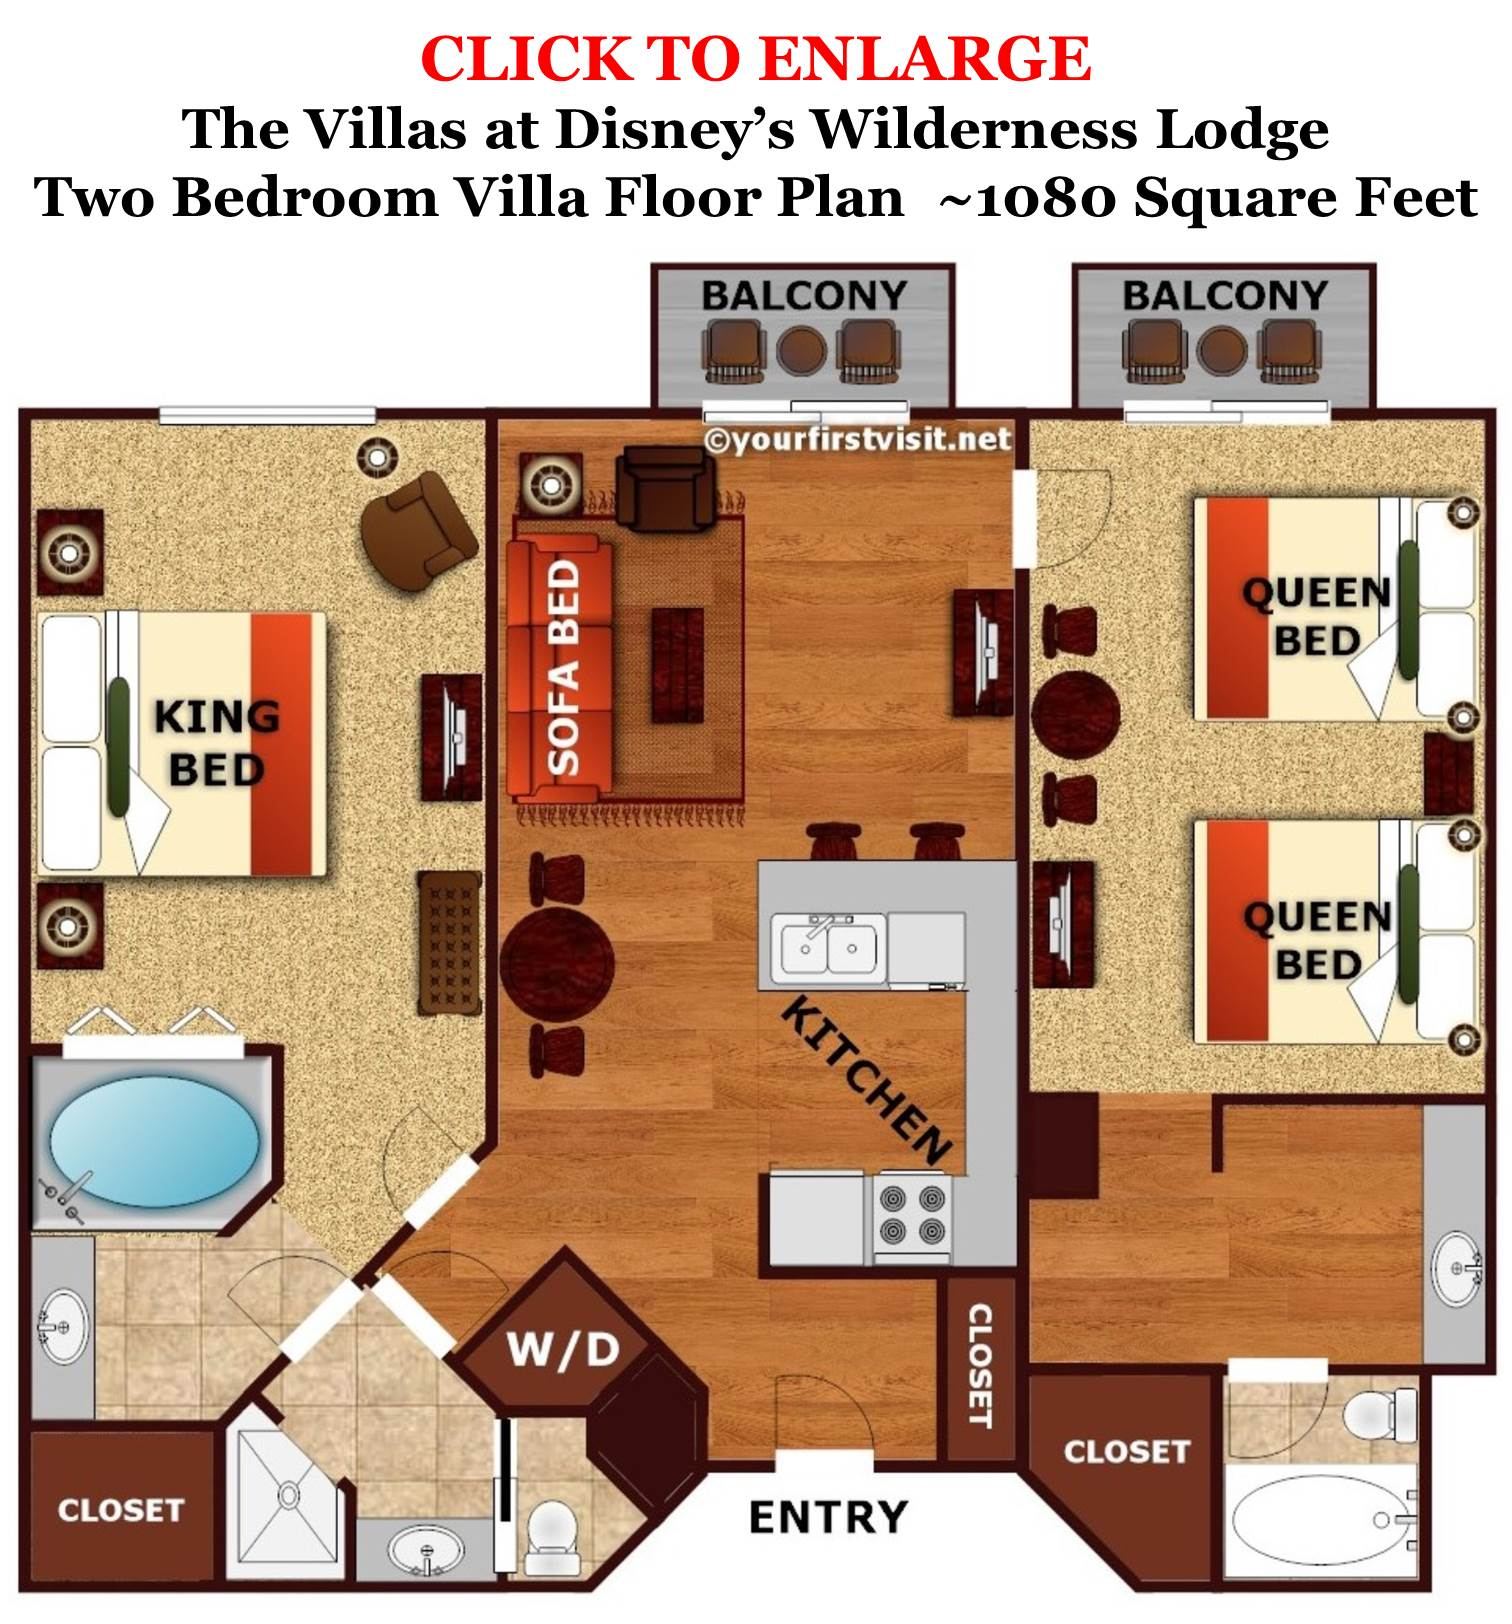 Floor Plan Two Bedroom Villa The Villas at Disney s Wilderness Lodge from  yourfirstvisit net. Large Family Deluxe Options at Walt Disney World   yourfirstvisit net